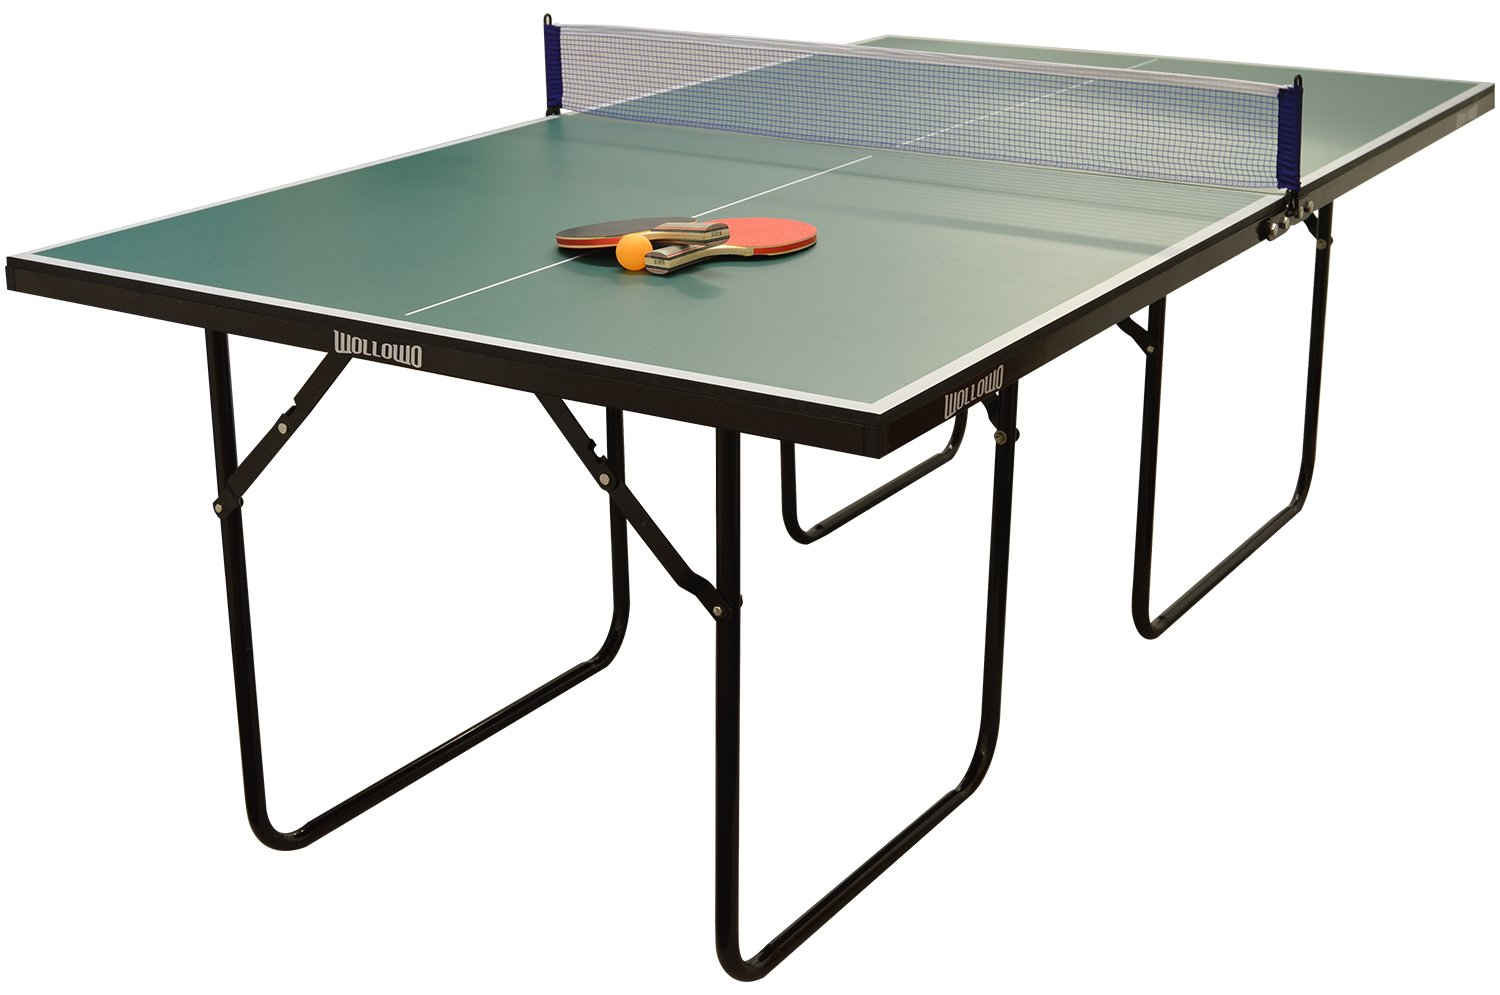 Wollowo Green 3/4 Size Junior Table Tennis/Ping Pong Table Foldable With  Bats: Amazon.co.uk: Sports U0026 Outdoors